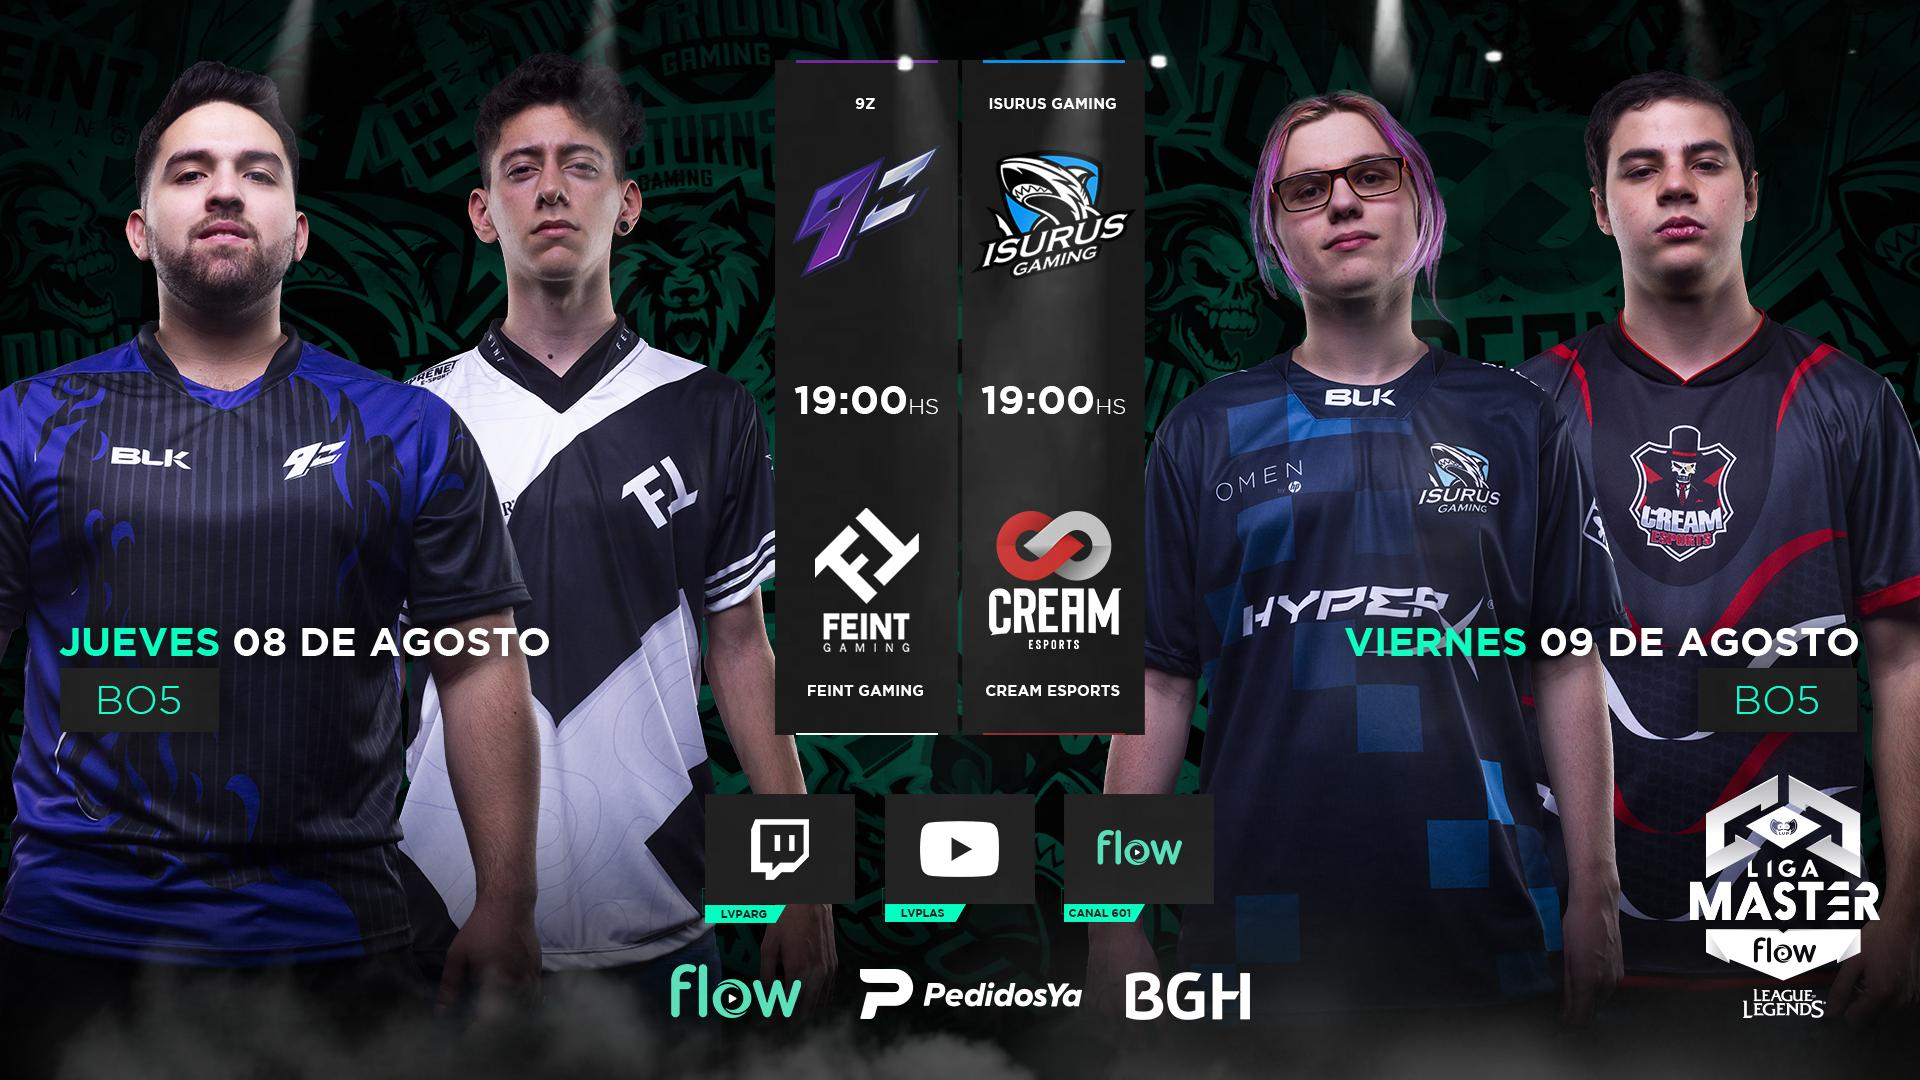 Liga Máster Flow: el gran torneo argentino de League of Legends entró en su etapa definitoria